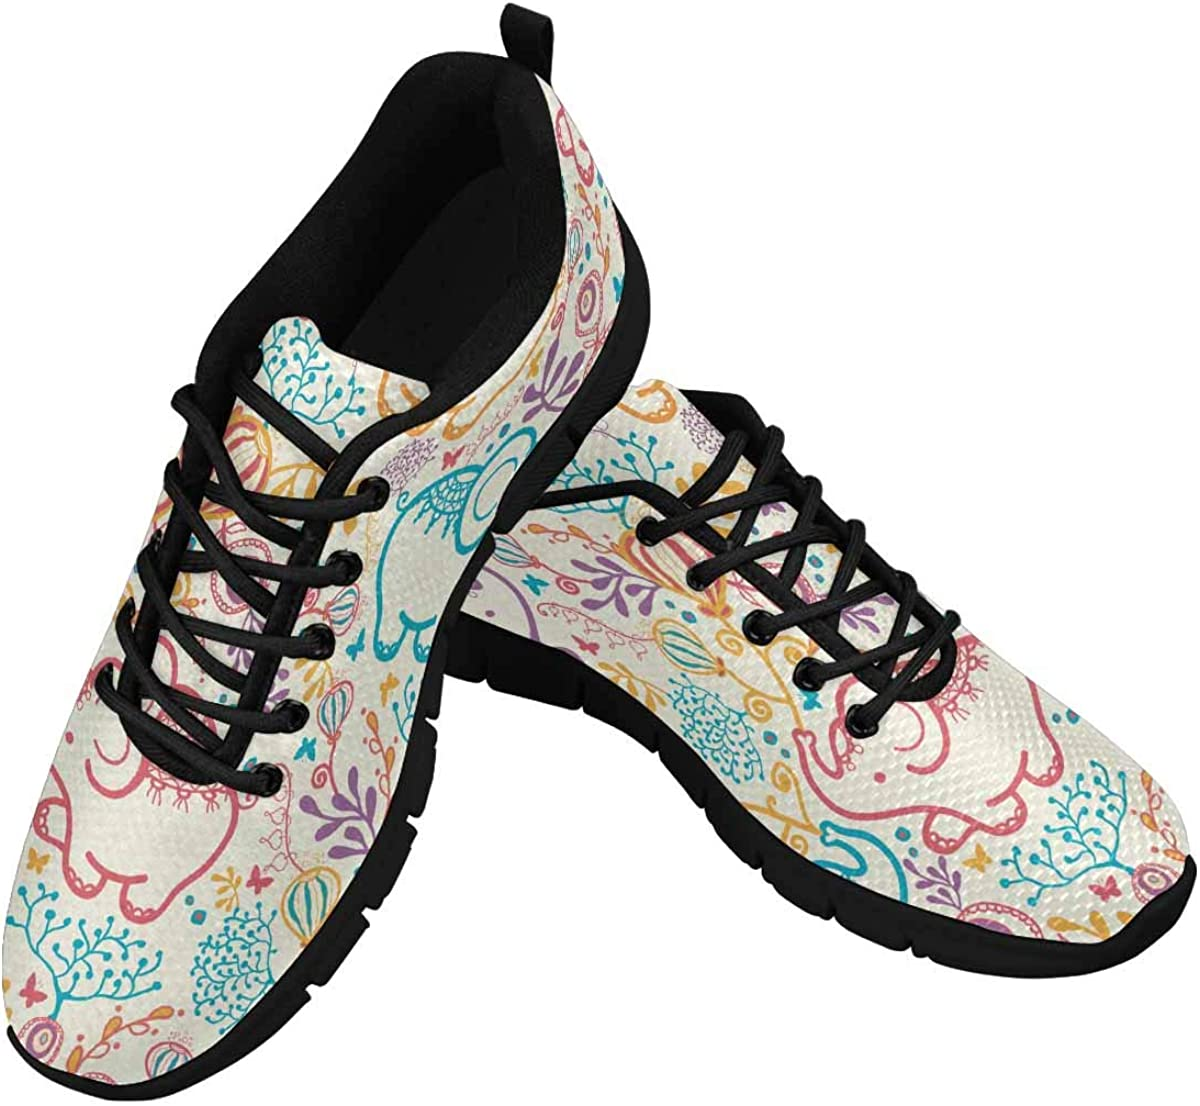 INTERESTPRINT Elephants with Flowers Women's Lightweight Athletic Casual Gym Sneakers